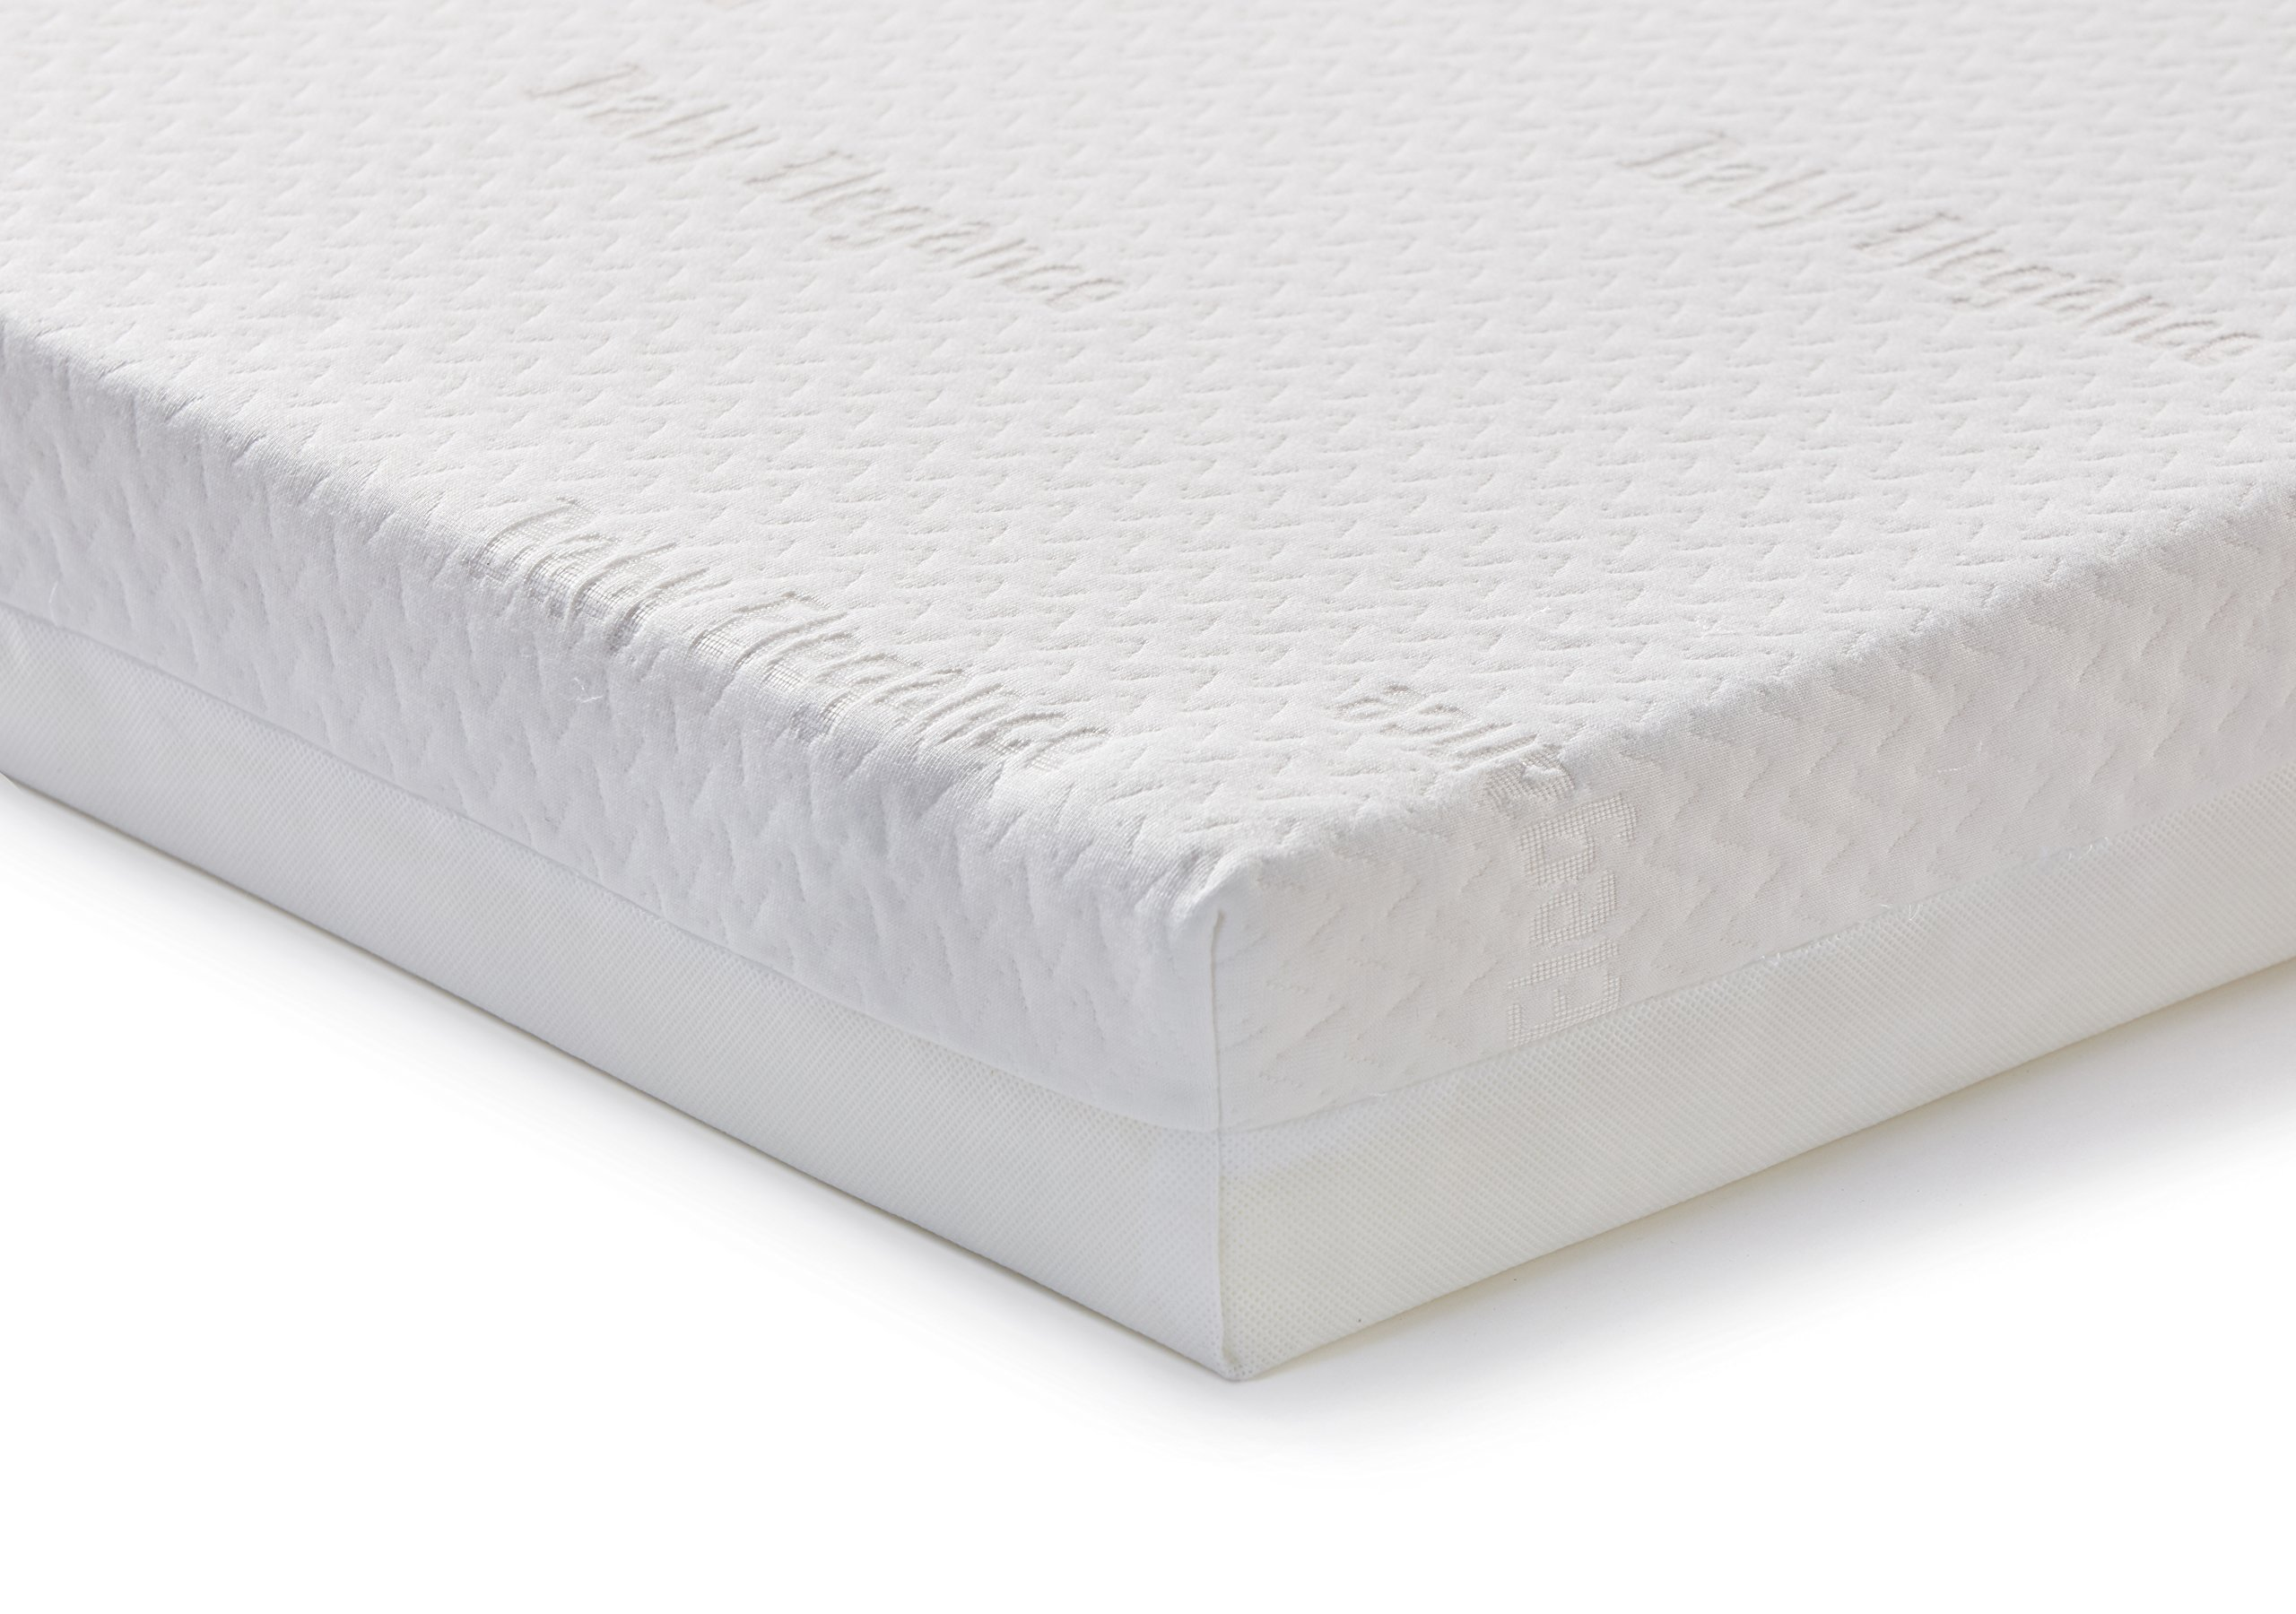 KATY/® 131 X 68 cm Superior FULLY BOUND With **TAPED EDGED** Spring Interior Mattress 131 x 68 cm Will fit Boori King Parrot